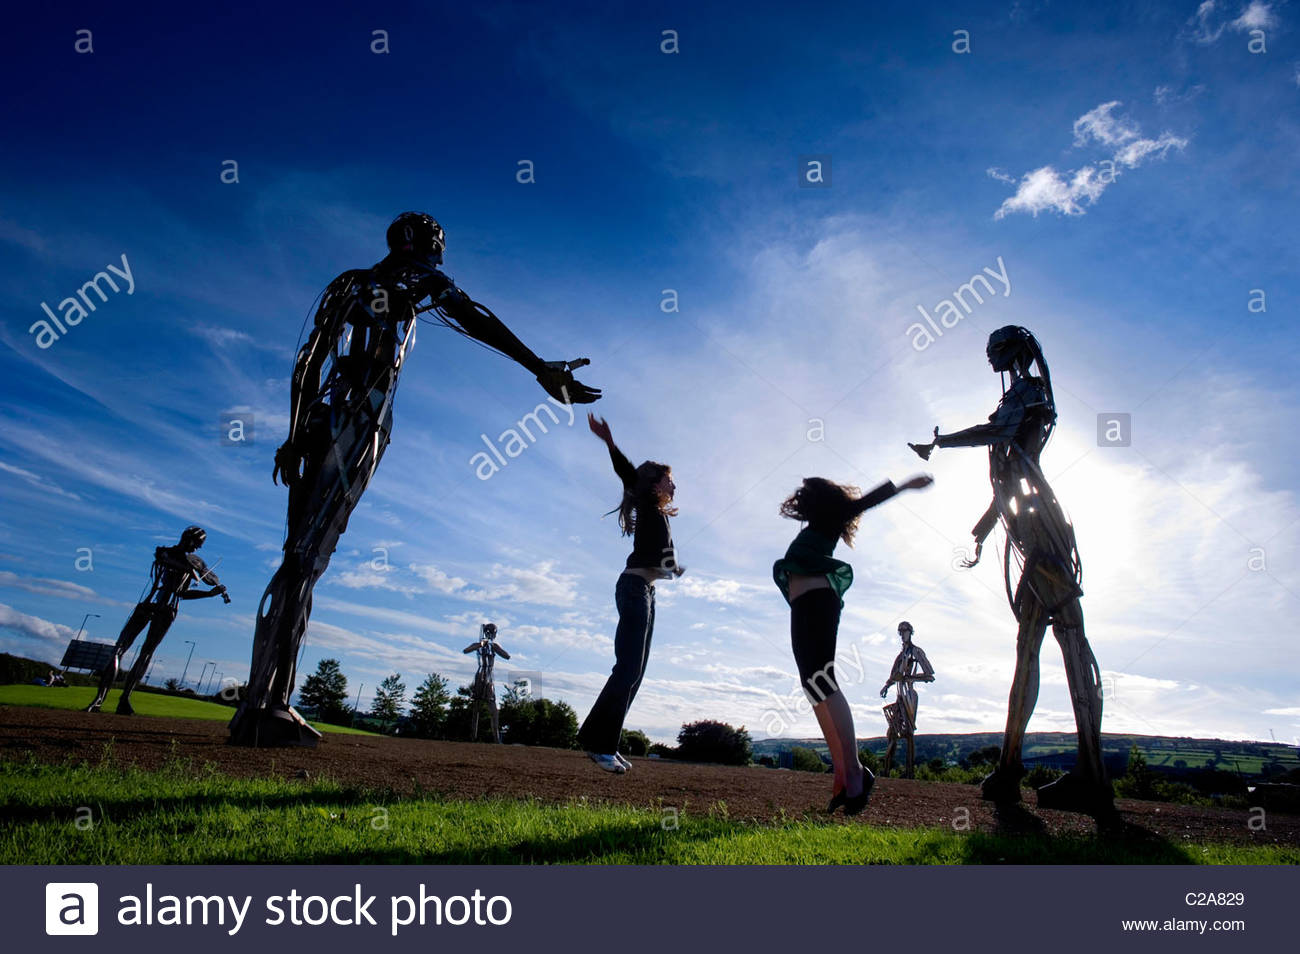 Children playing at a public art sculpture in Strabane, Ulster. - Stock Image